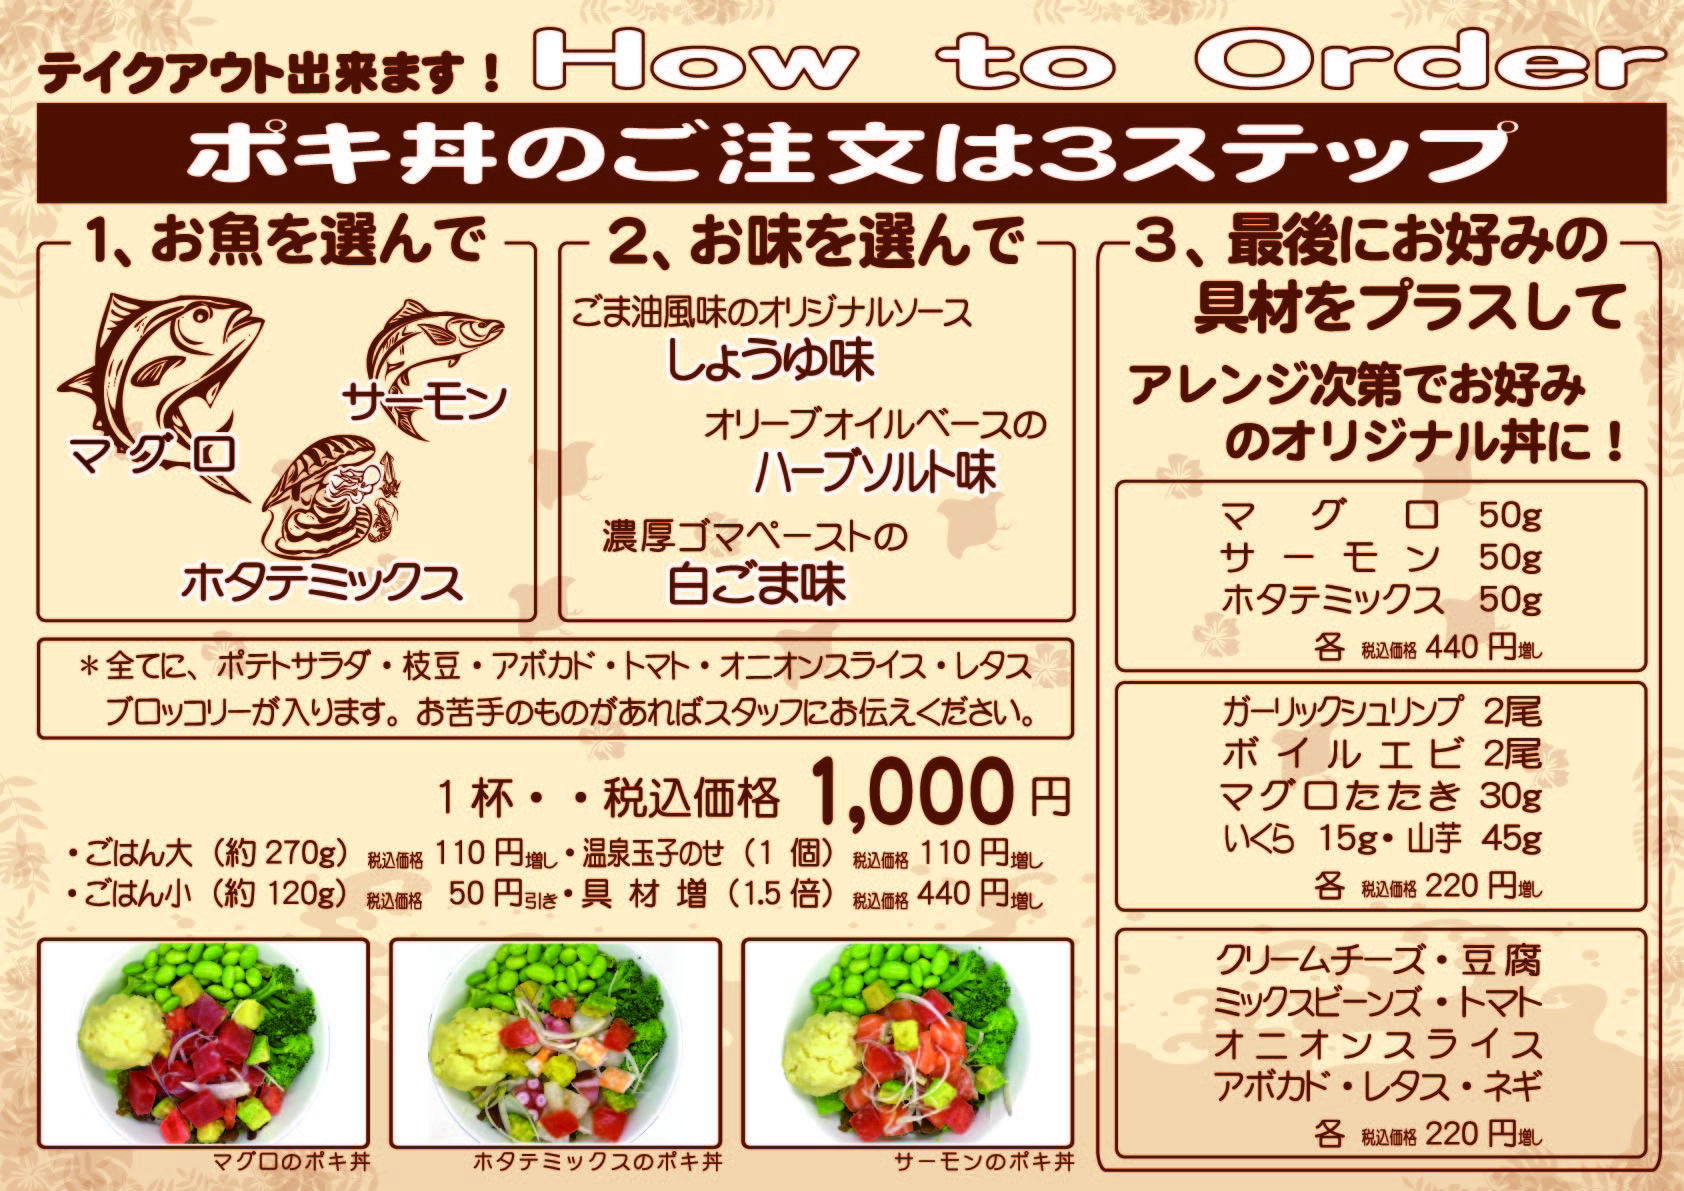 A2ポキ丼(Howto)